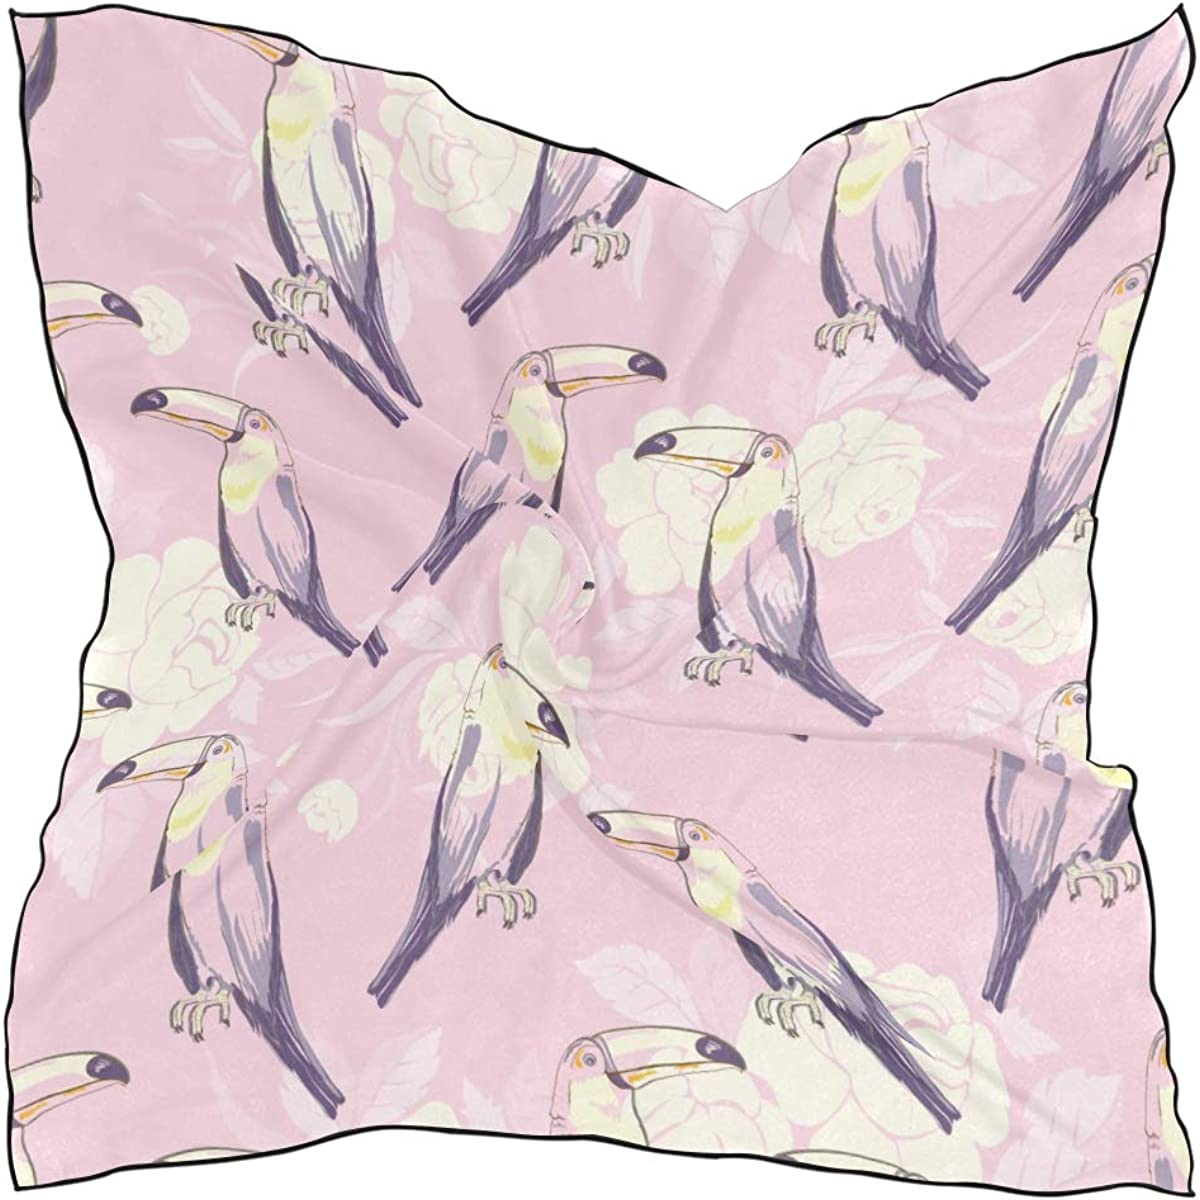 Women's Soft Polyester Silk Square Scarf Macaw And Toucan Exotic Wild Animals Perched In Tropical Rainforest Fashion Print Head & Hair Scarf Neckerchief Accessory-23.6x23.6 Inch